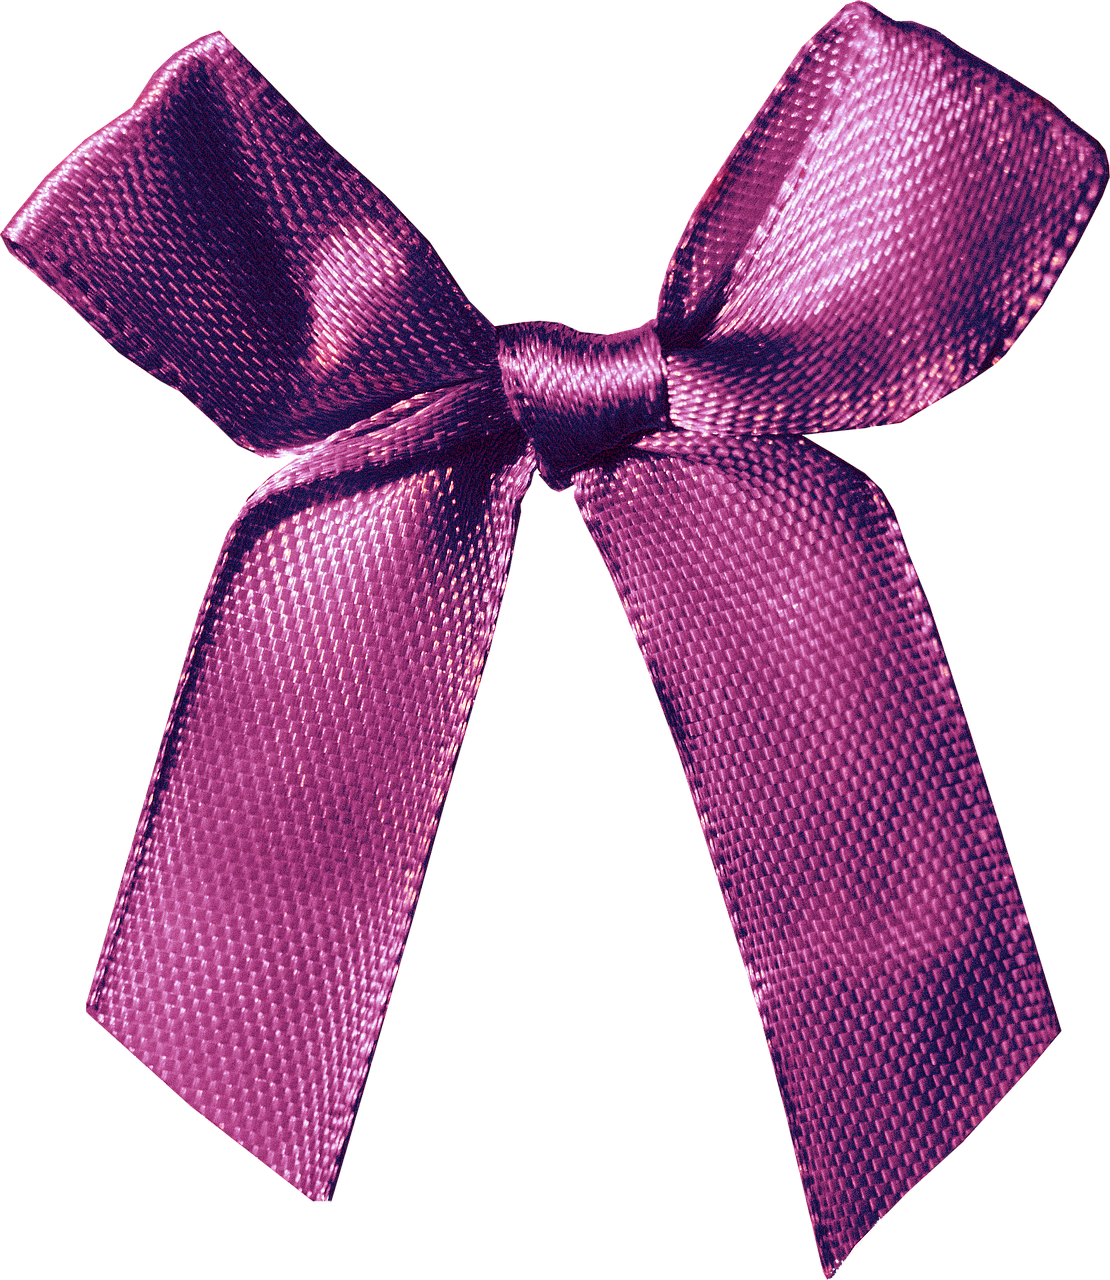 Pink Bow, Smart, Pink, Bow, Graphics, HQ Photo